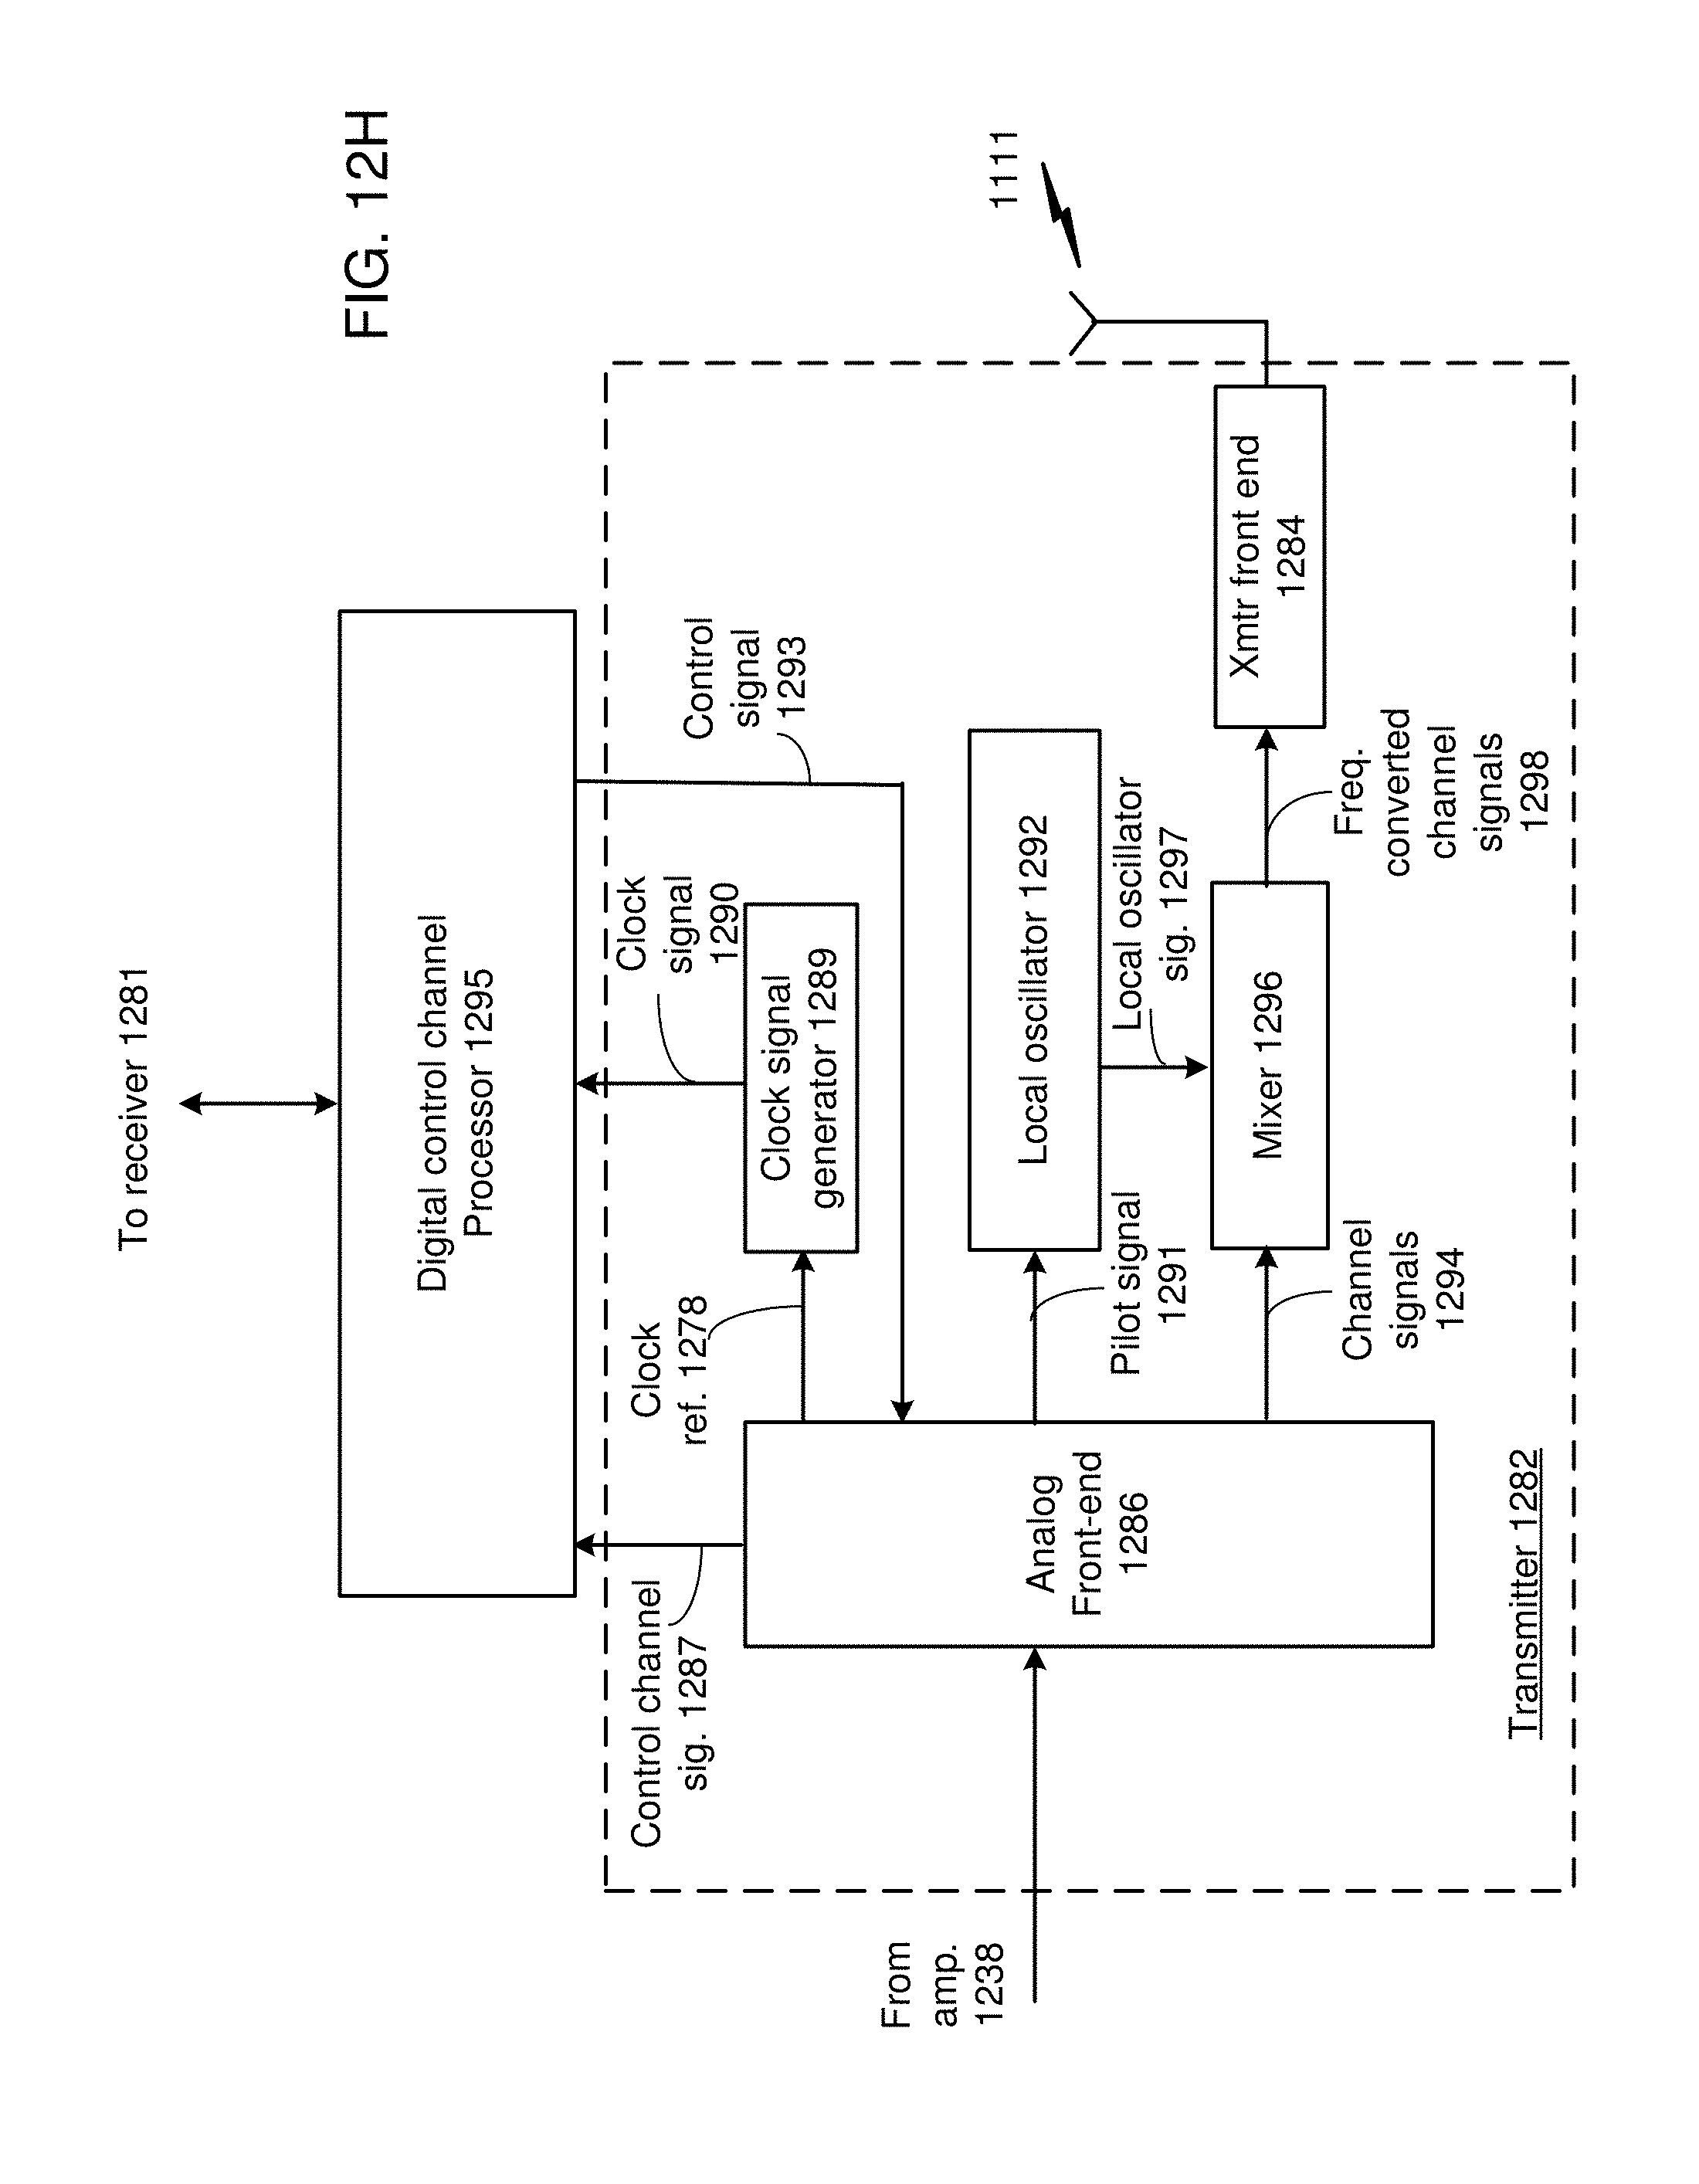 Us9999038b2 Remote Distributed Antenna System Google Patents Circuit Diagram Of Digital Isolation And Termination